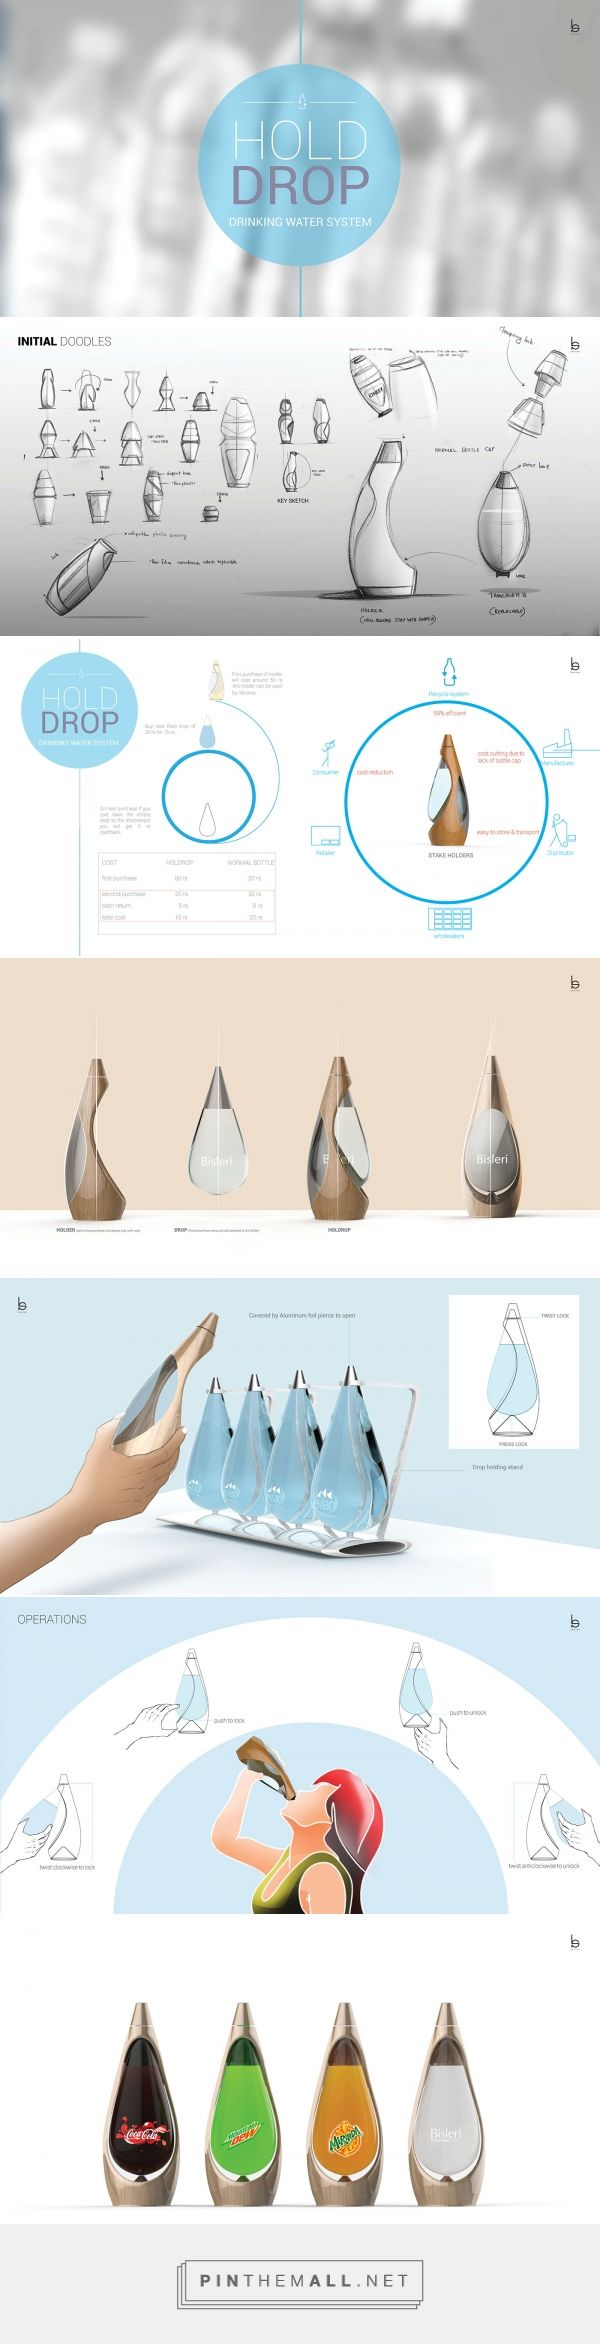 Hold Drop drinking system by Bonny Sunny. Source: Behance. Pin curated by…